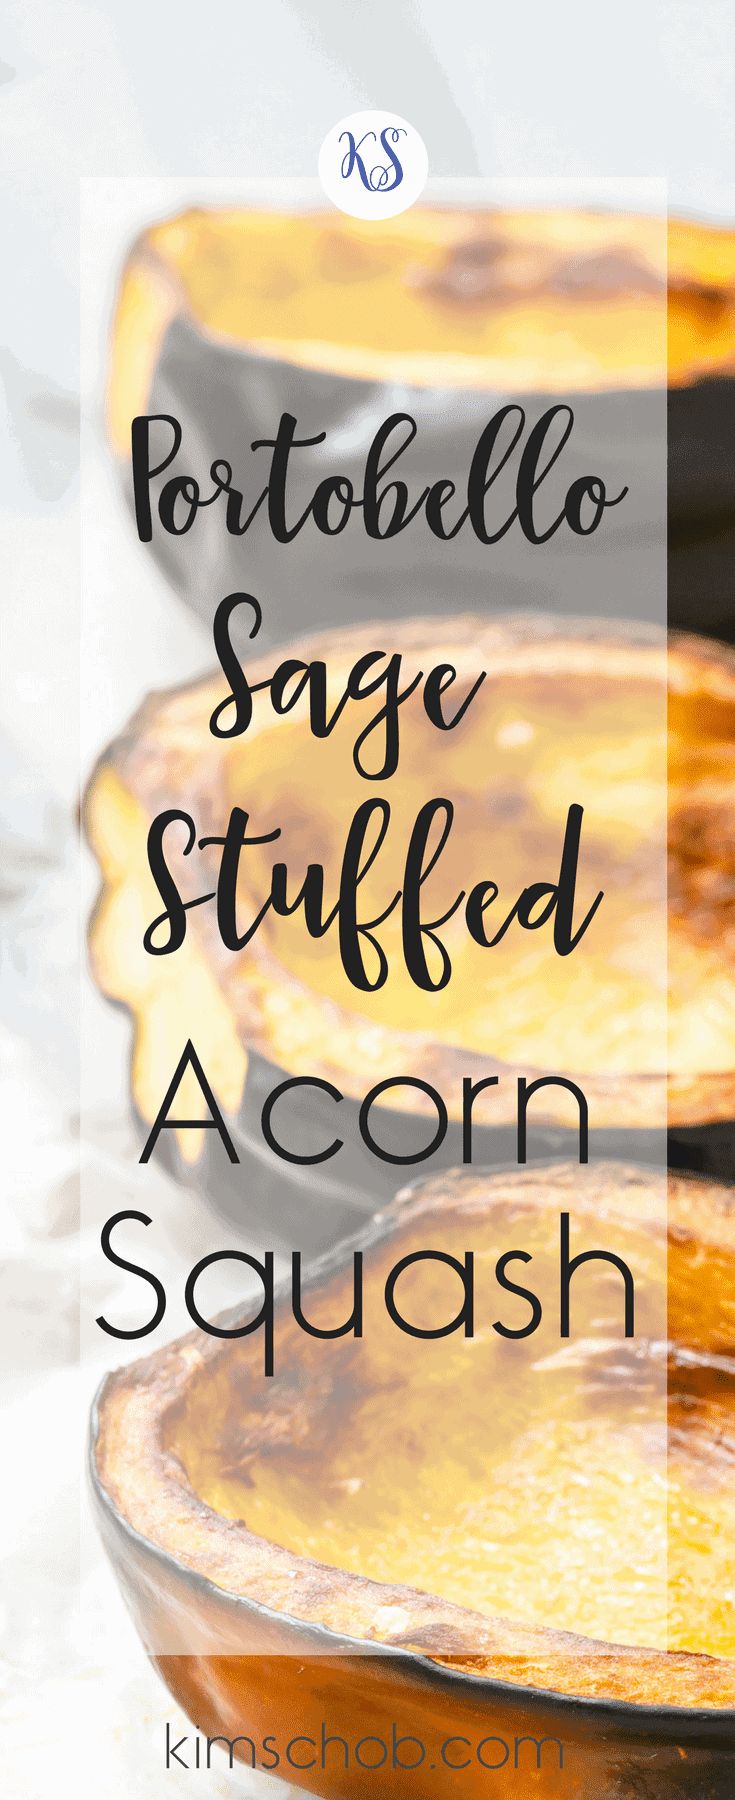 Portobello Sage-Stuffed Acorn Squash | on a plate stuffed with crisp pancetta bacon, rich Portobello mushrooms, sweet dates  | kimschob.com #sidedish #stuffedacornsquash